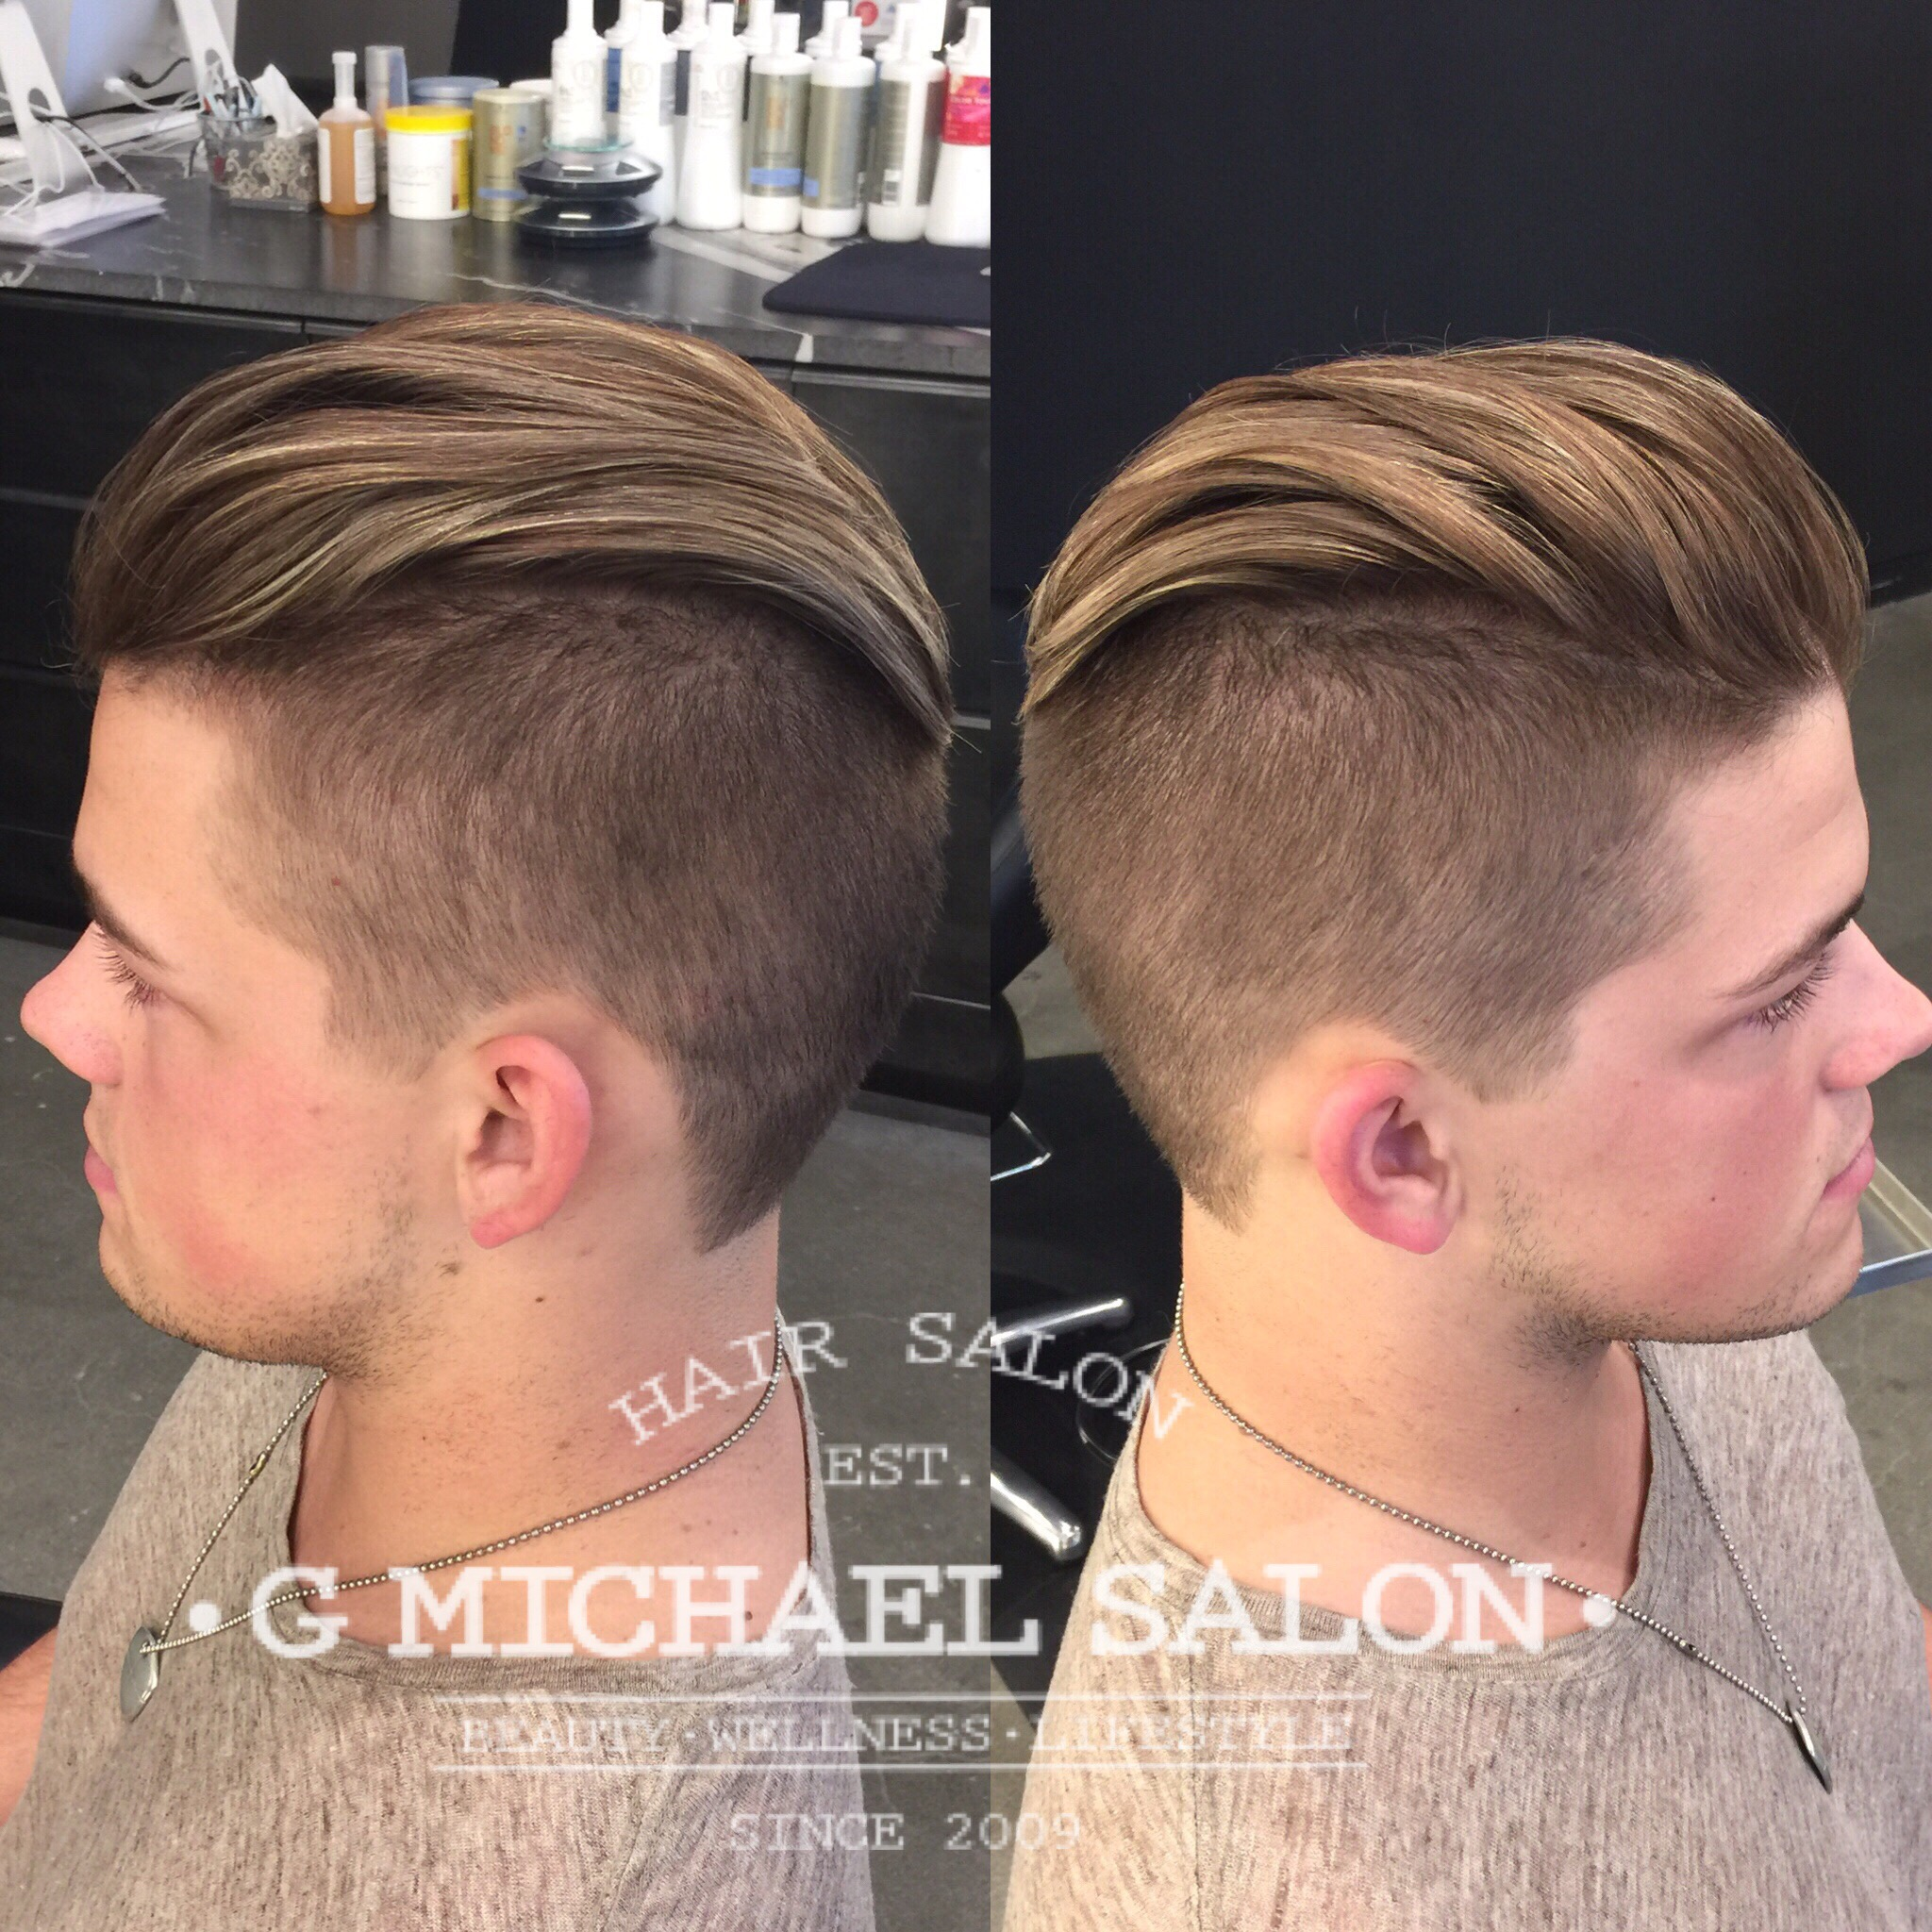 haircut salon nearby before and after pictures of mens haircuts haircuts 3045